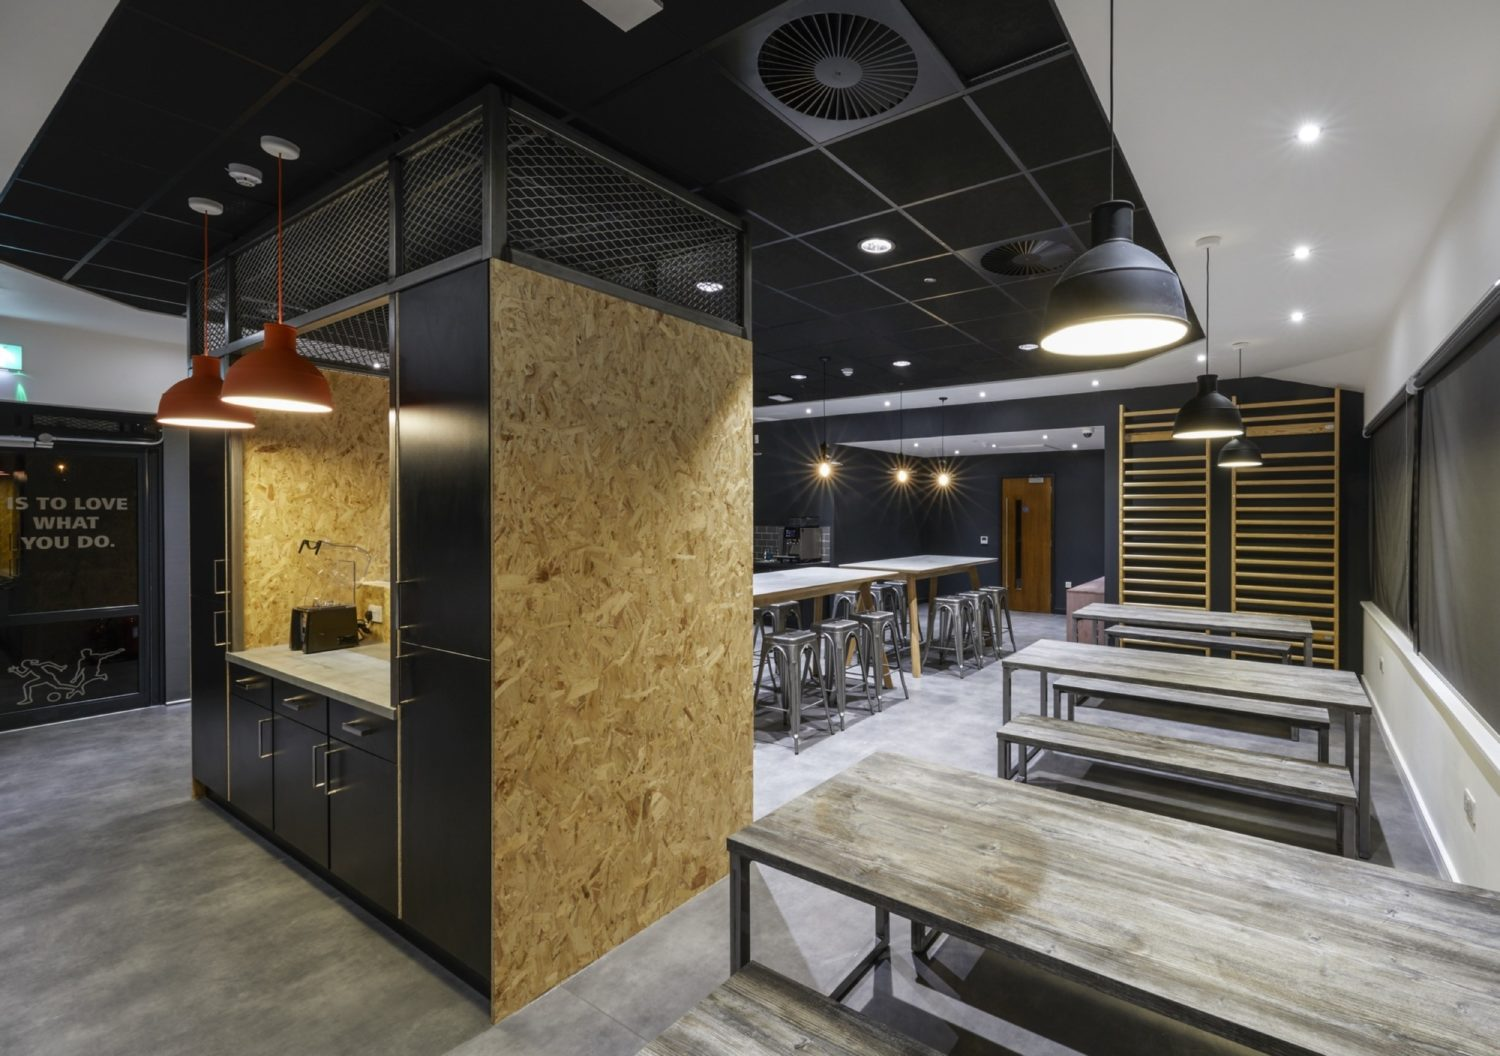 MyProtein trendy office kitchen fit out